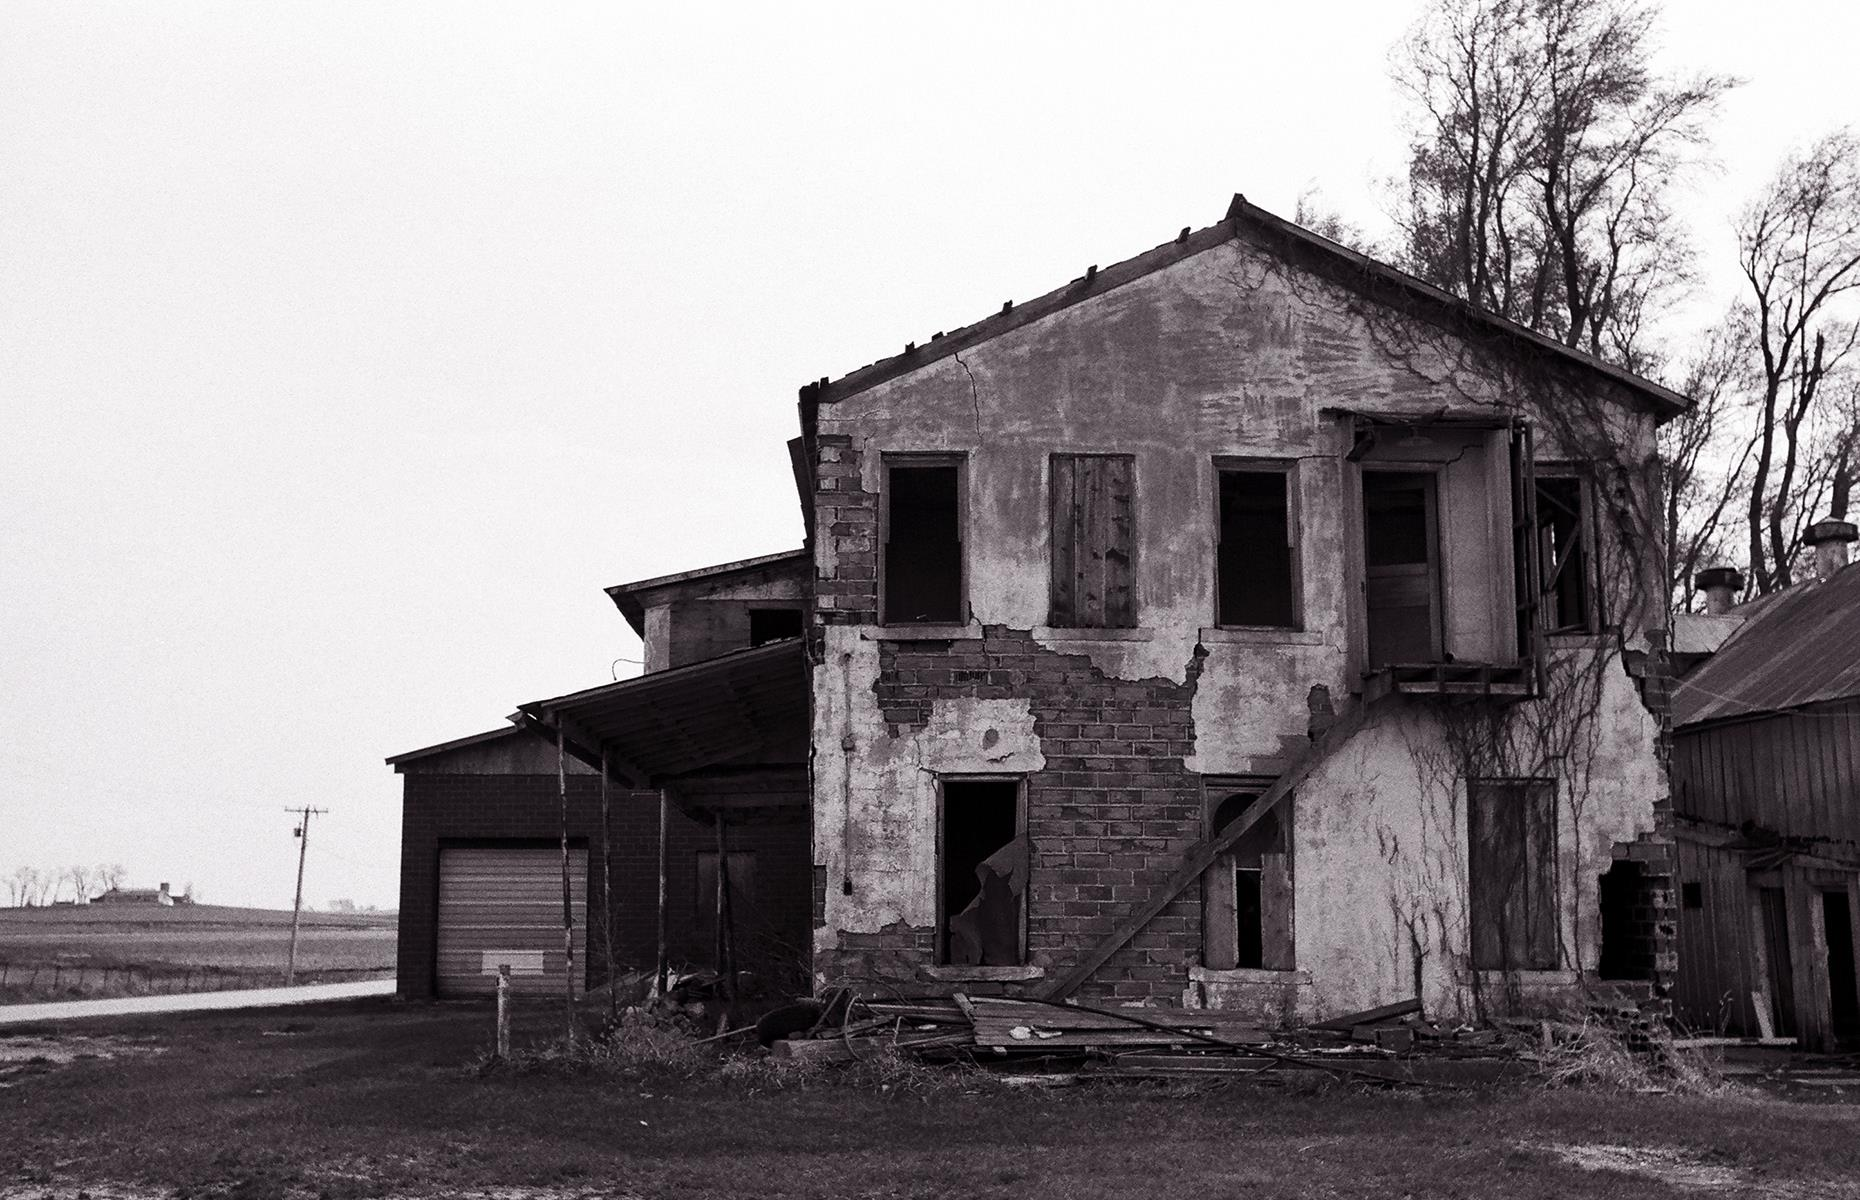 Slide 31 of 101: Today a handful of arresting buildings remain, telling the story of a town that once was. These include a haunting white church, a deserted cemetery and a decaying old creamery building (pictured).